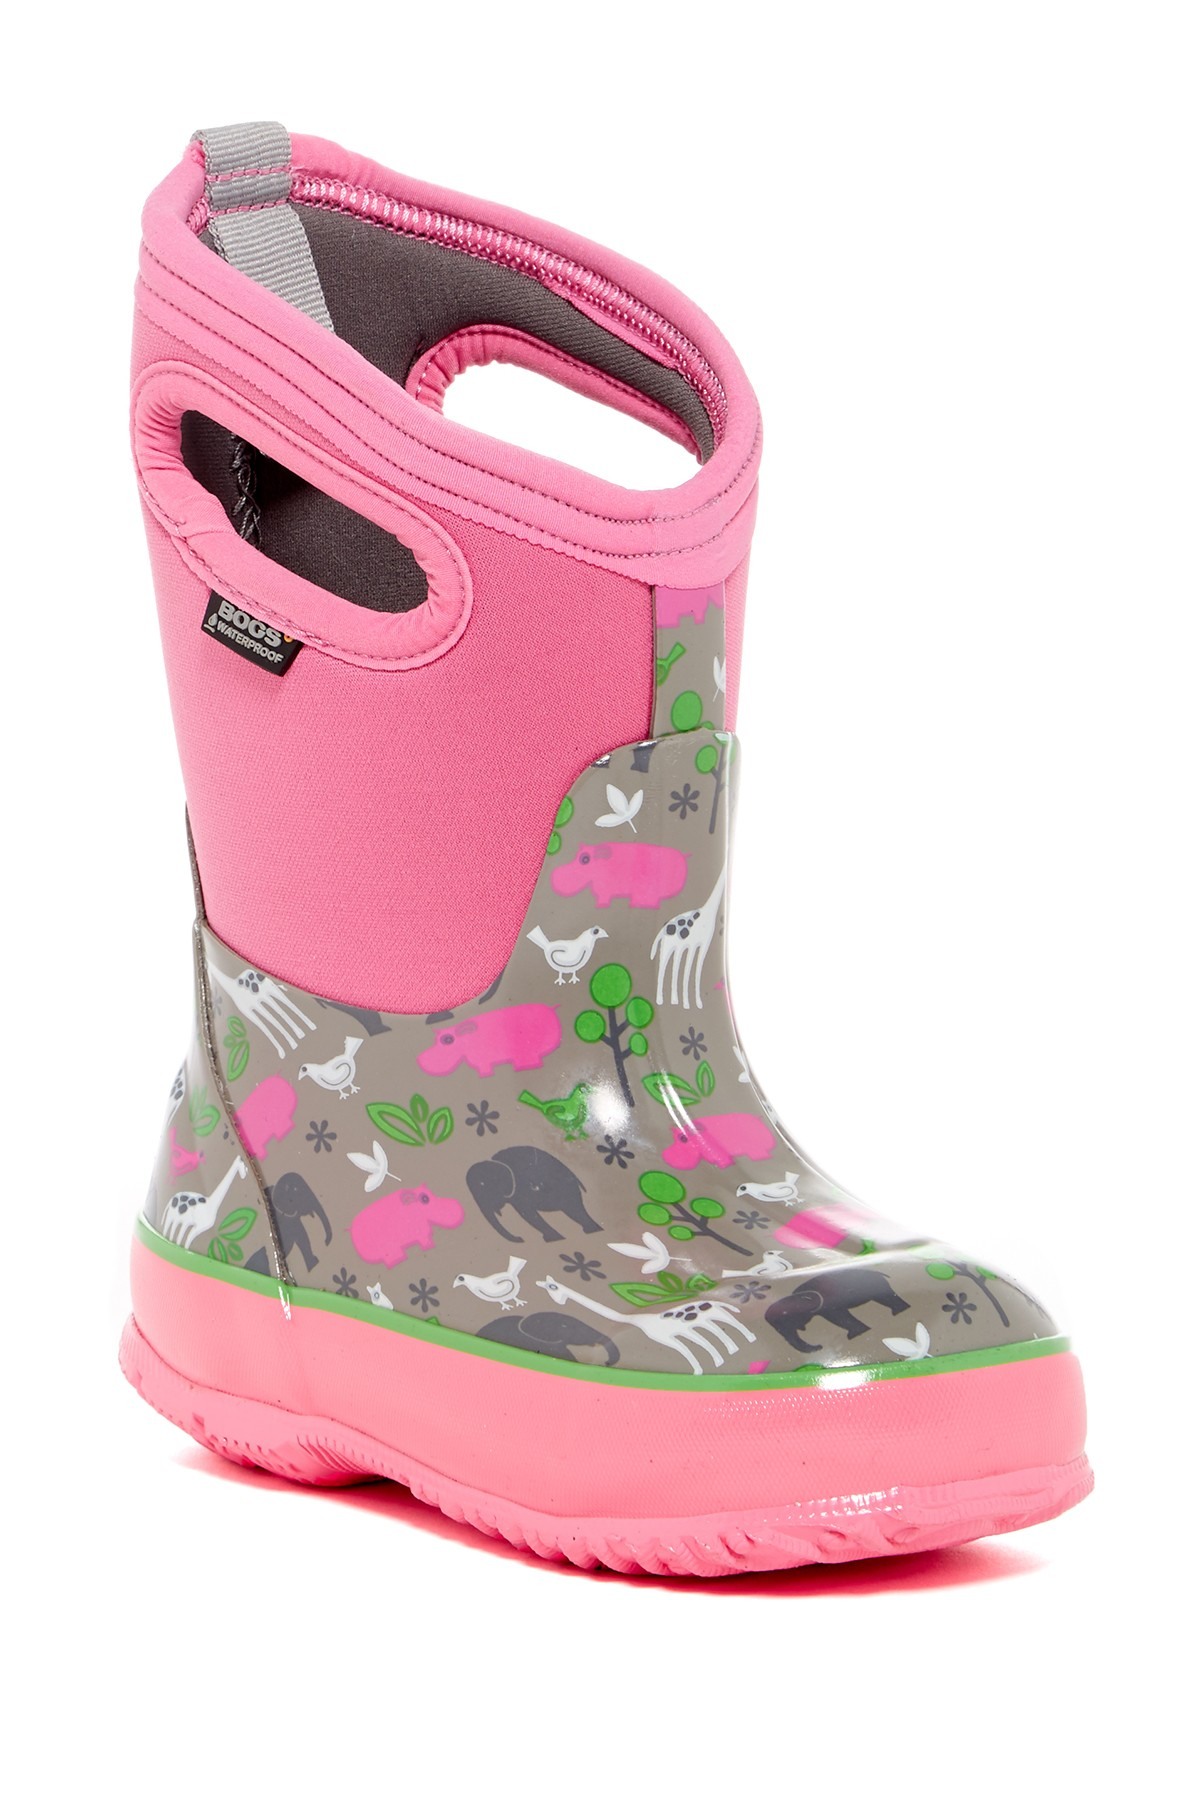 rain boots - back to school essentials - she got guts.jpg